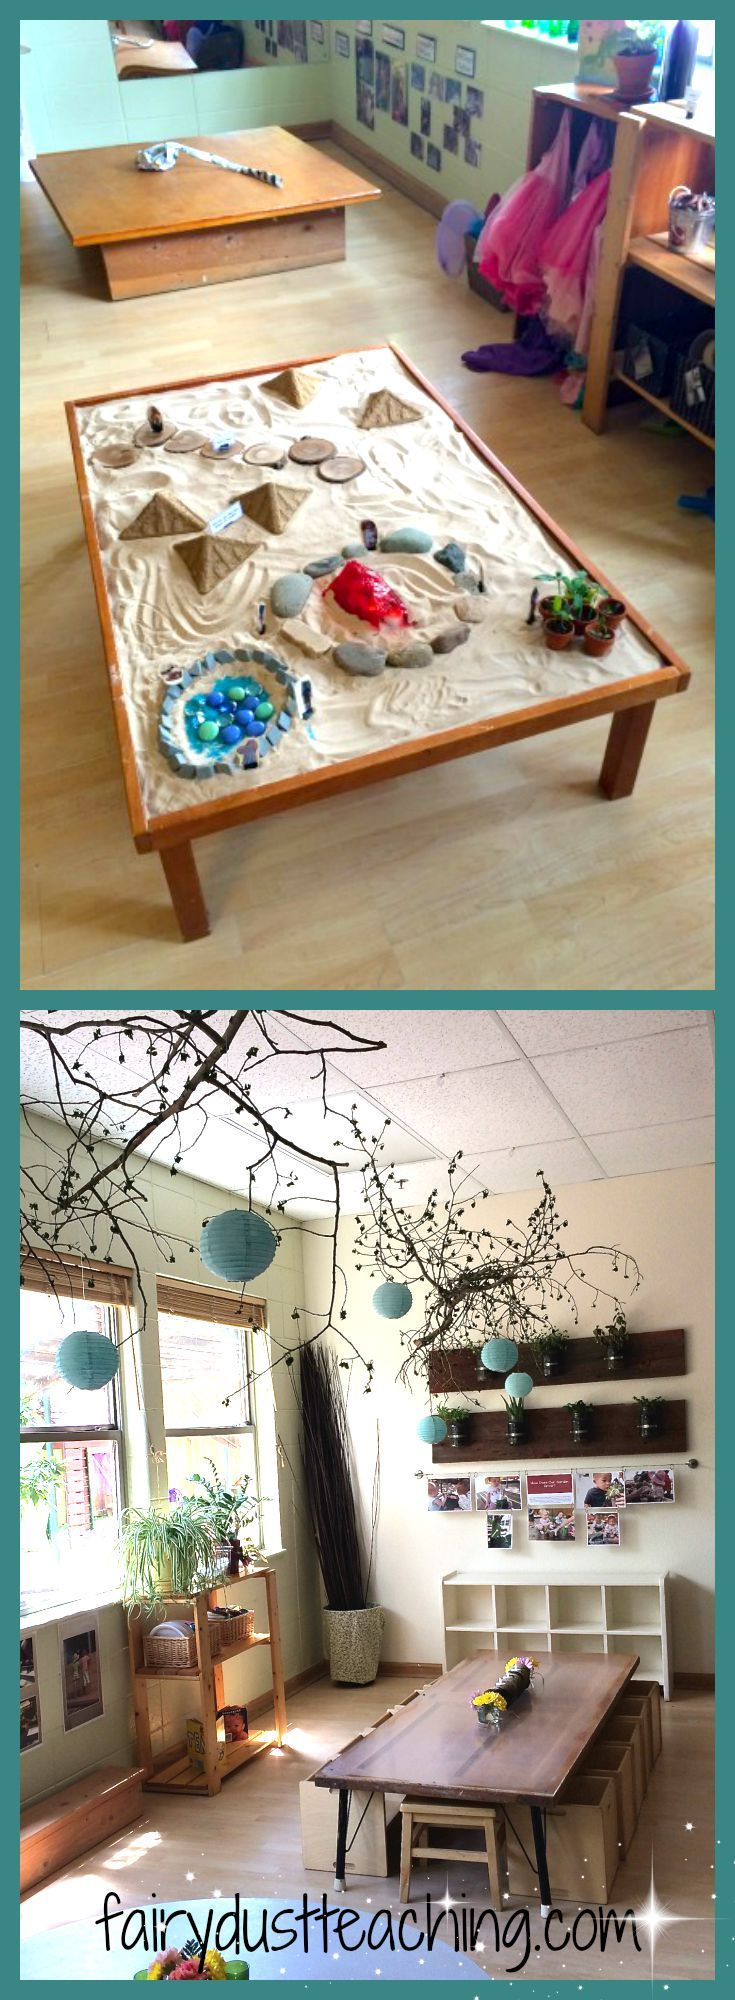 Beautiful Reggio Emilia environment at Boulder Journey School.